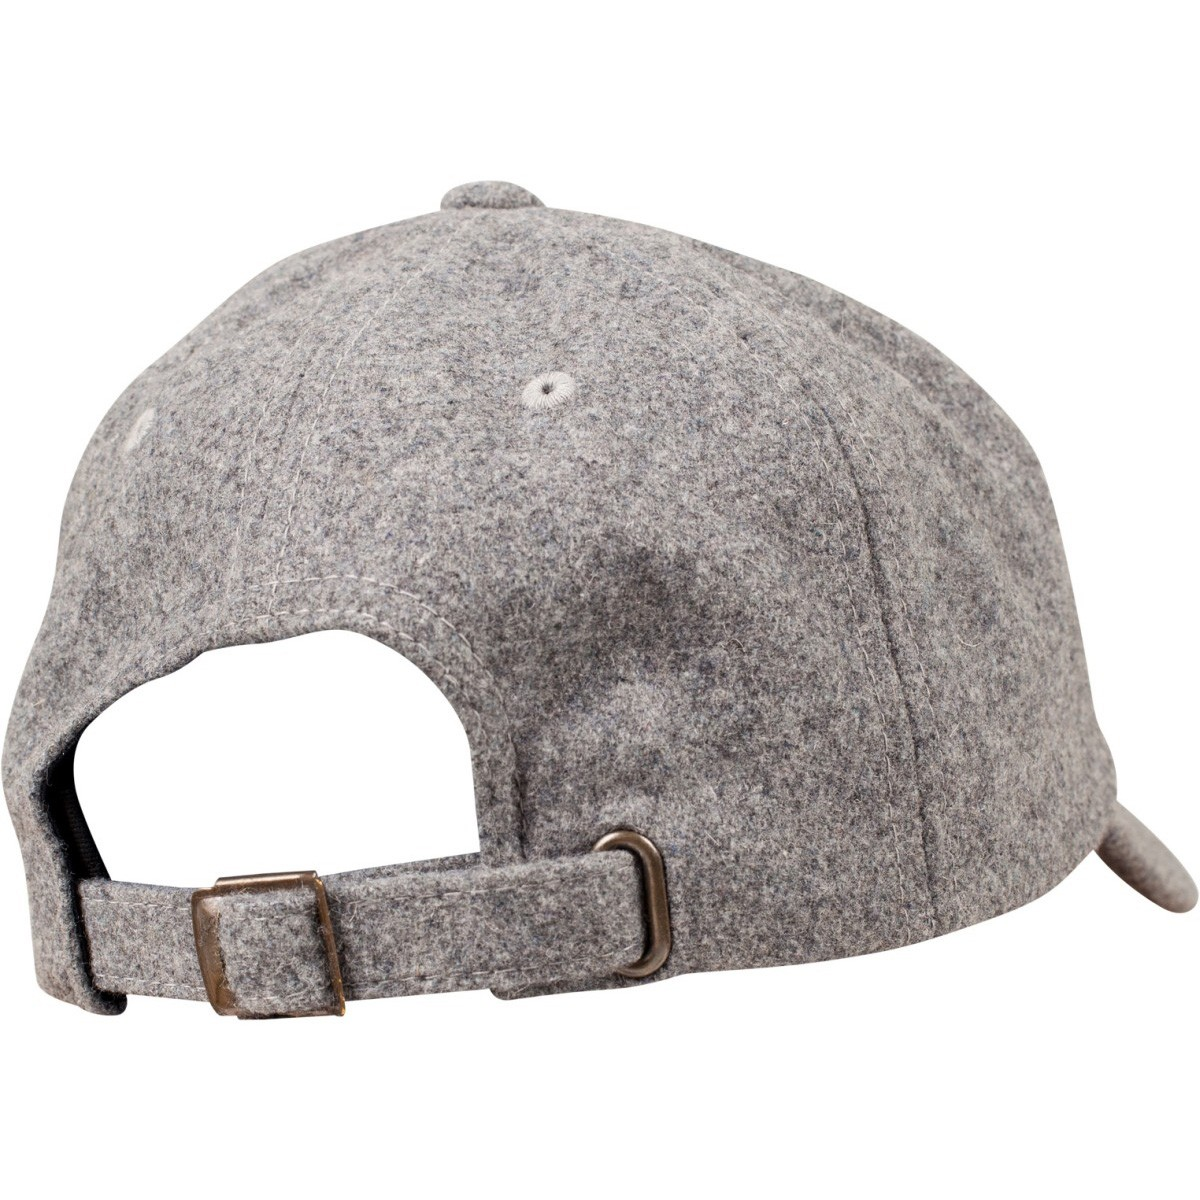 a329015b41e48 Flexfit Low Profile Melton Wool Strapback Dad Cap - Heather. About this  product. Picture 1 of 5  Picture 2 of 5  Picture 3 of 5 ...